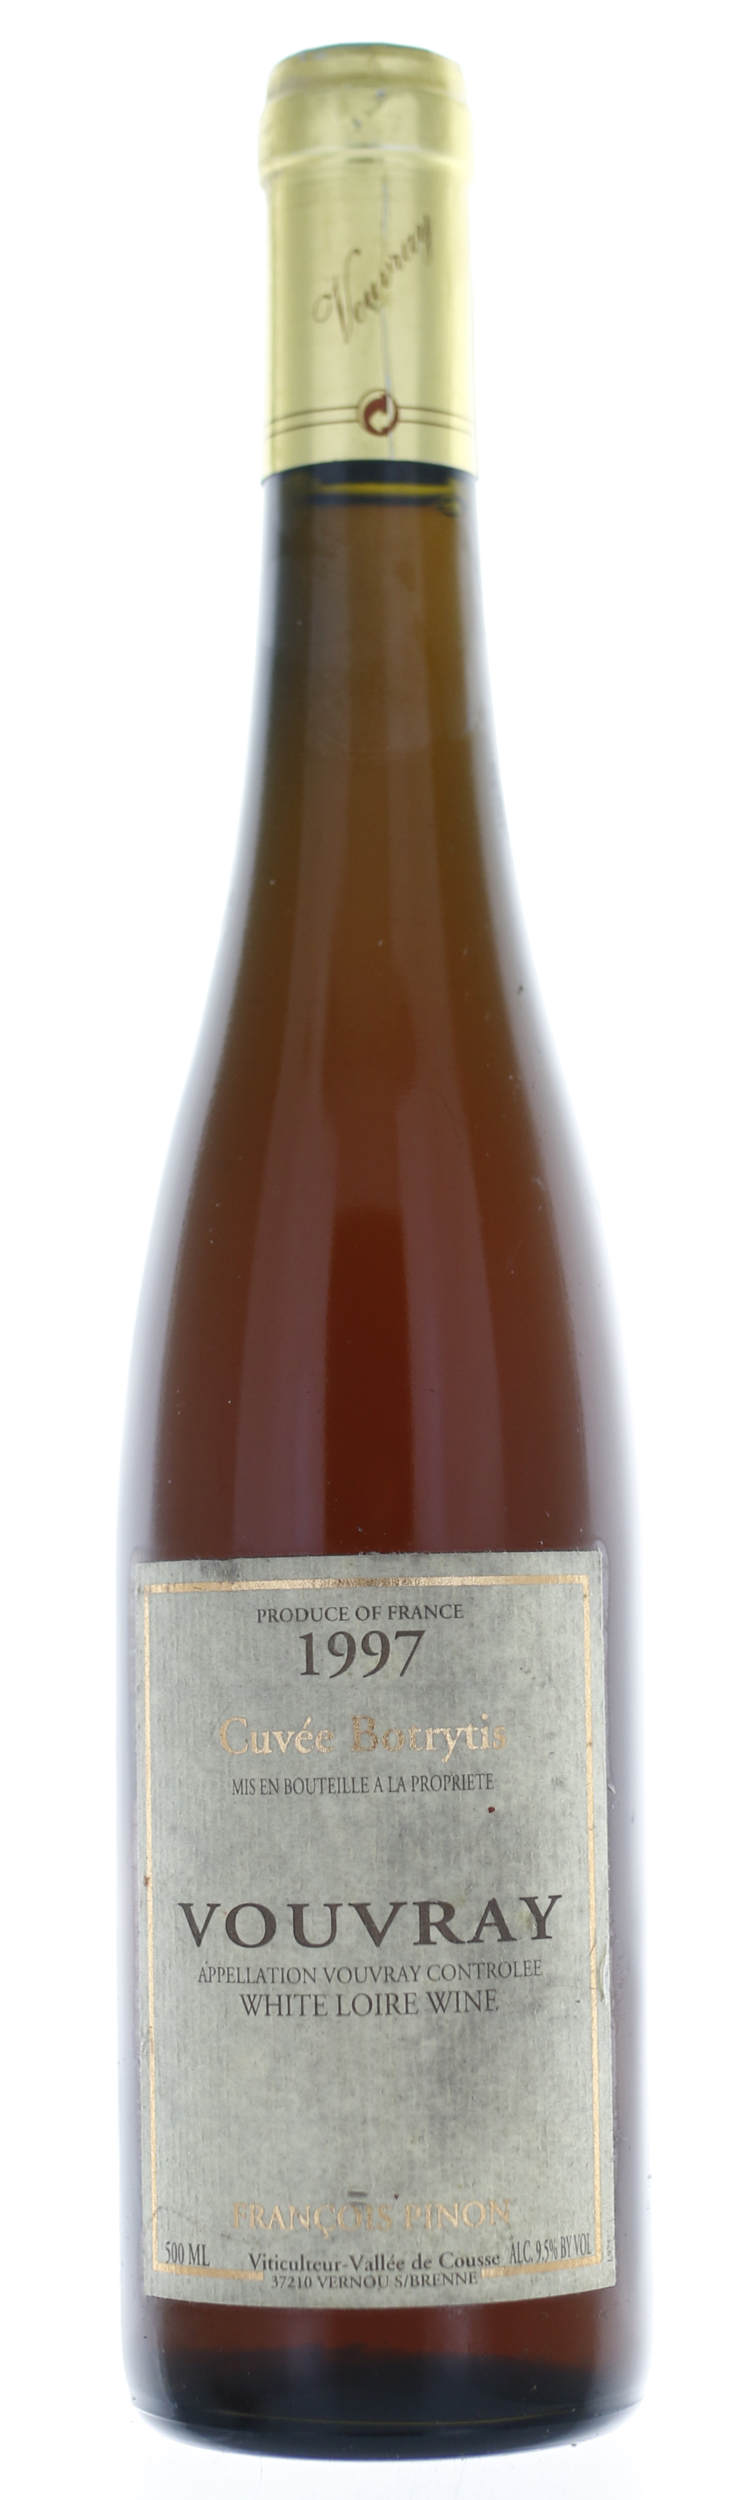 Vouvray - F Pinon Cuvée Botrytis 50cl - 1997